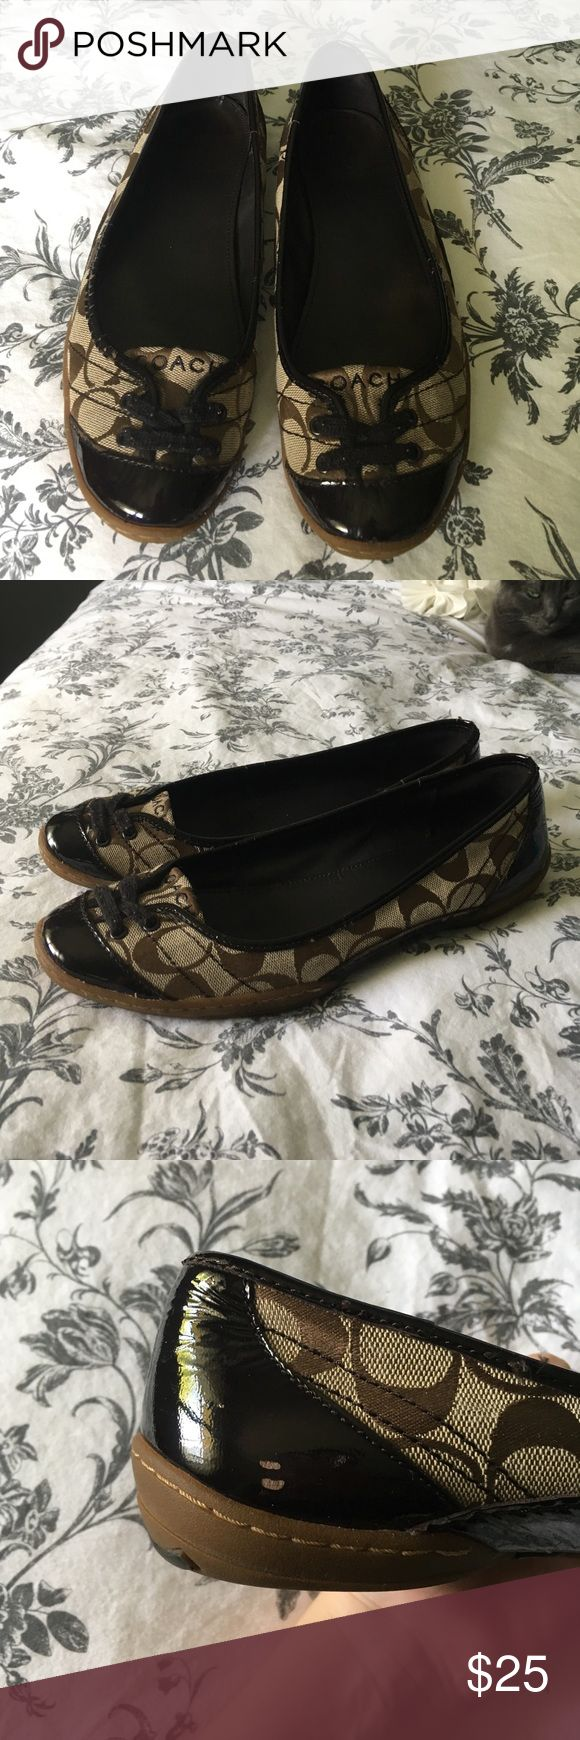 Coach Flats Coach flat shoes. Size 10. Worn on sides and heel as shown in the pictures. I used to wear these shoes all the time but sadly have little use for them now. Will accept reasonable offers! As far as I know they don't sell these shoes anymore at coach. Coach Shoes Flats & Loafers